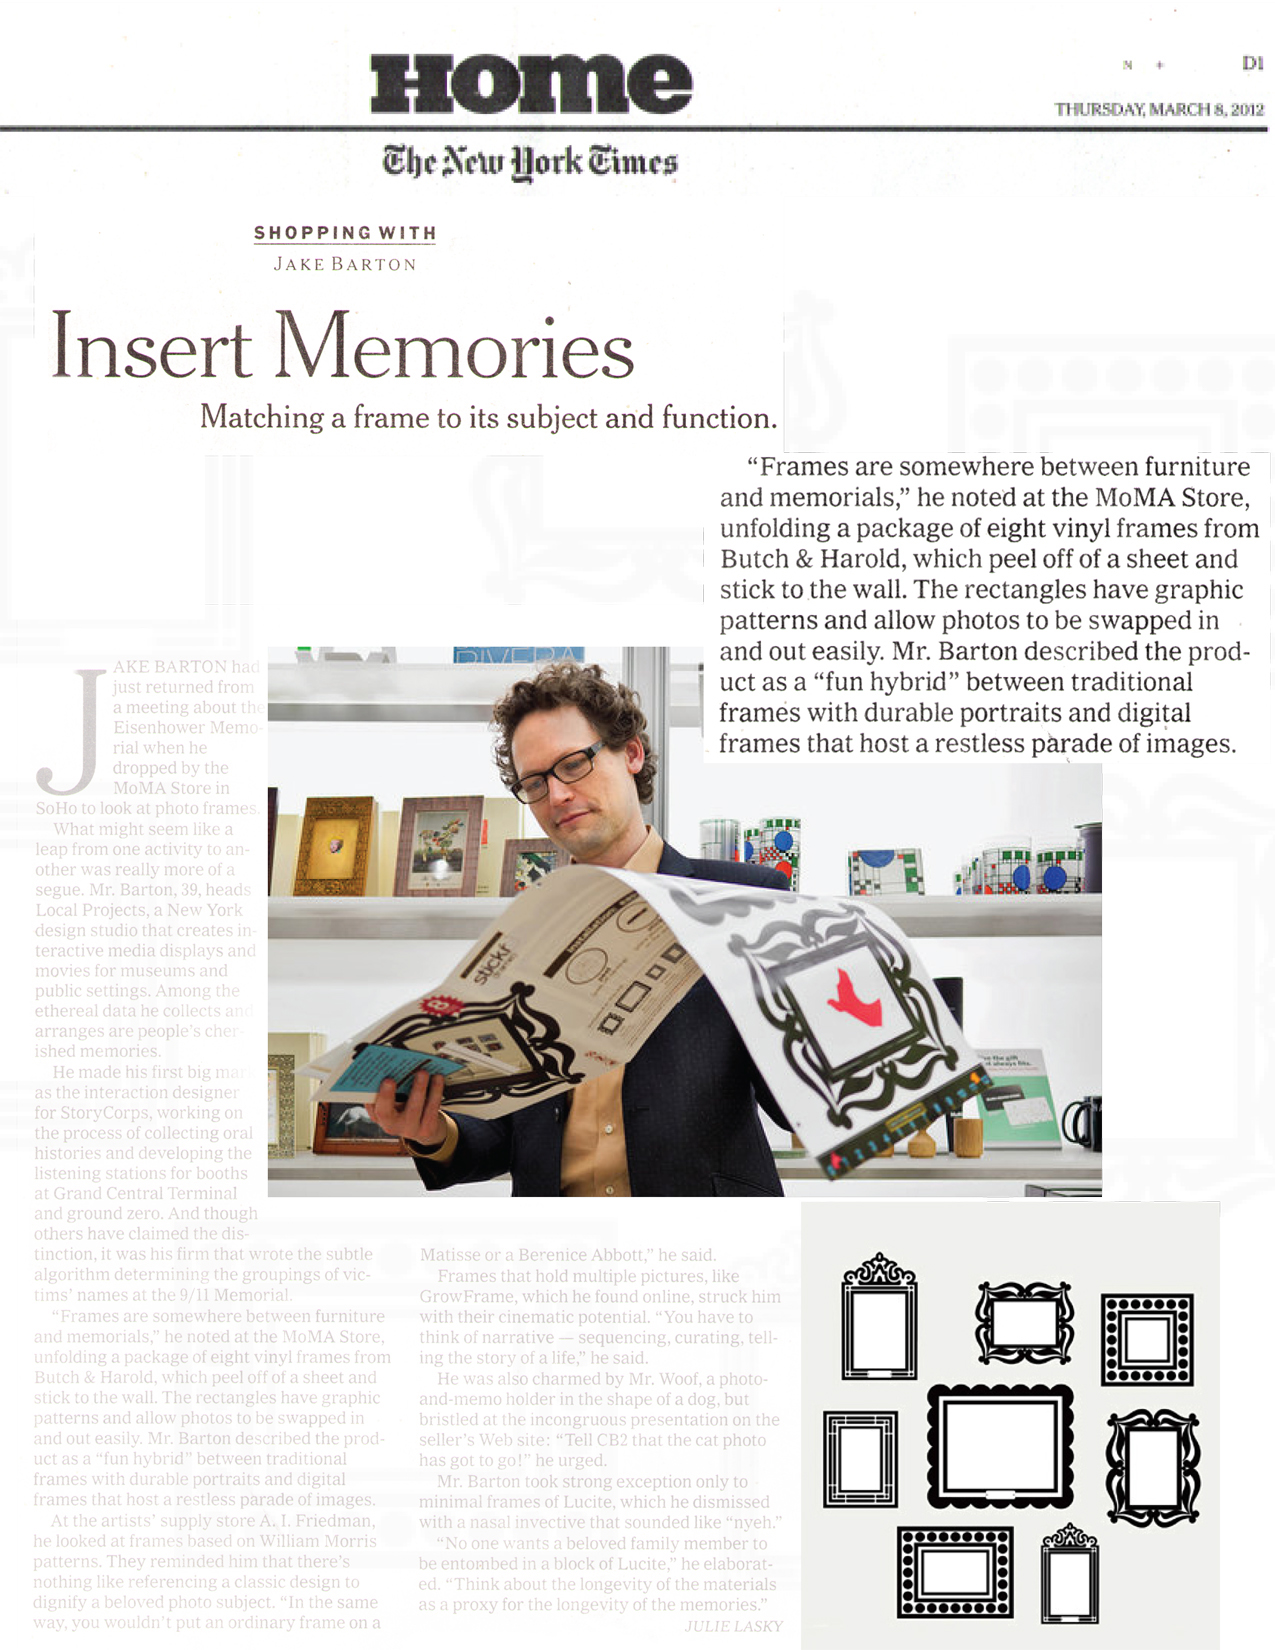 jake barton of the ny times examines packaging for stickr frames at the moma store by bread design article by julie lasky home and garden photo credit - New York Times Home And Garden